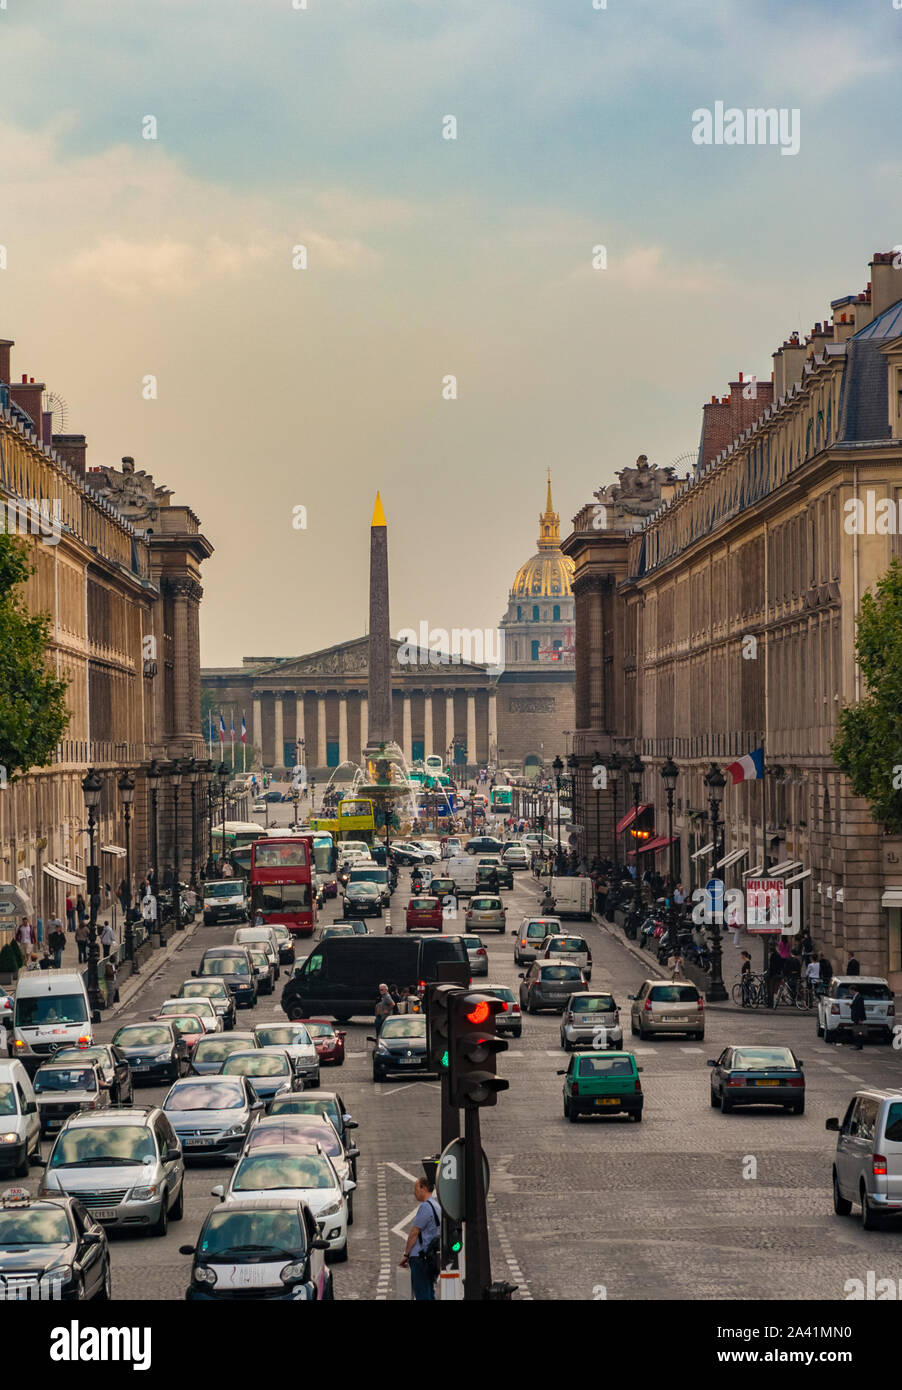 Perfect view of the street Rue Royal leading to the Place de la Concorde with the famous giant Egyptian obelisk in the centre and the Palais Bourbon... Stock Photo